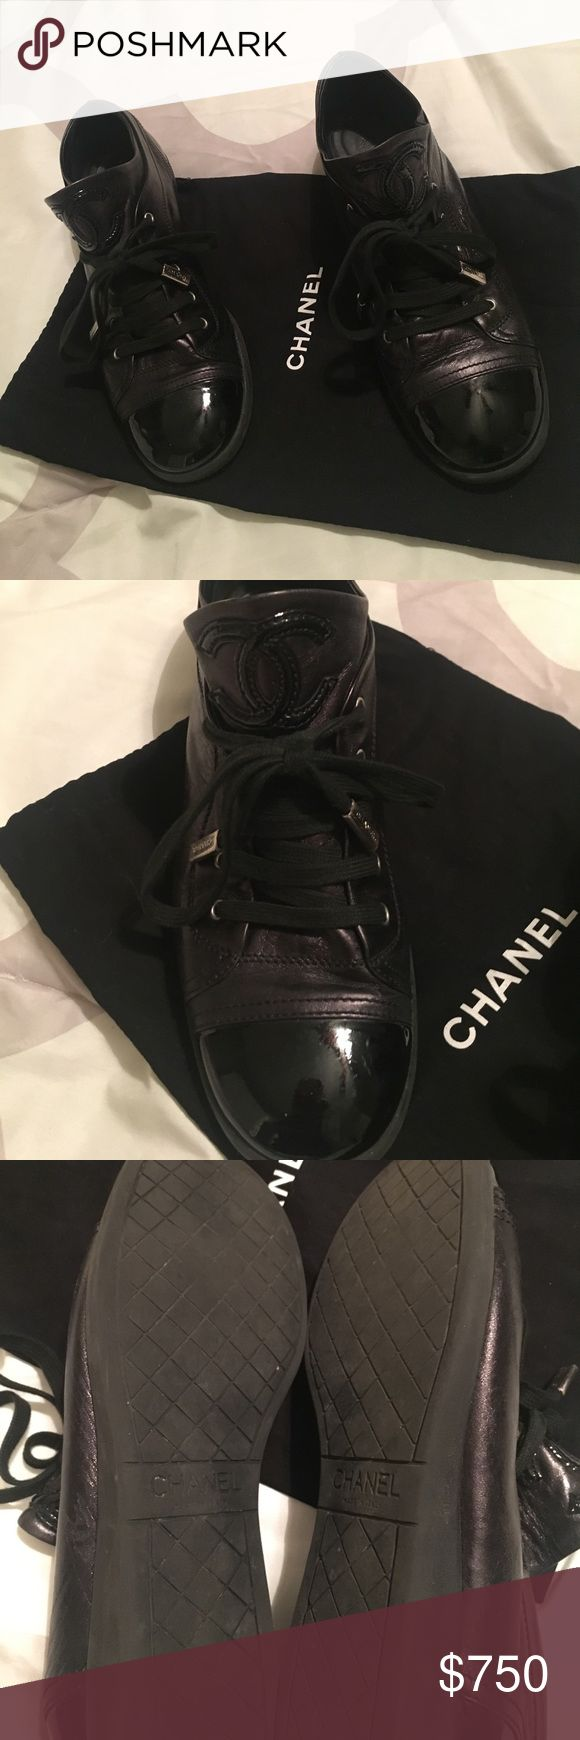 Chanel tennis shoes 100% authentic. Used. CHANEL Shoes Sneakers